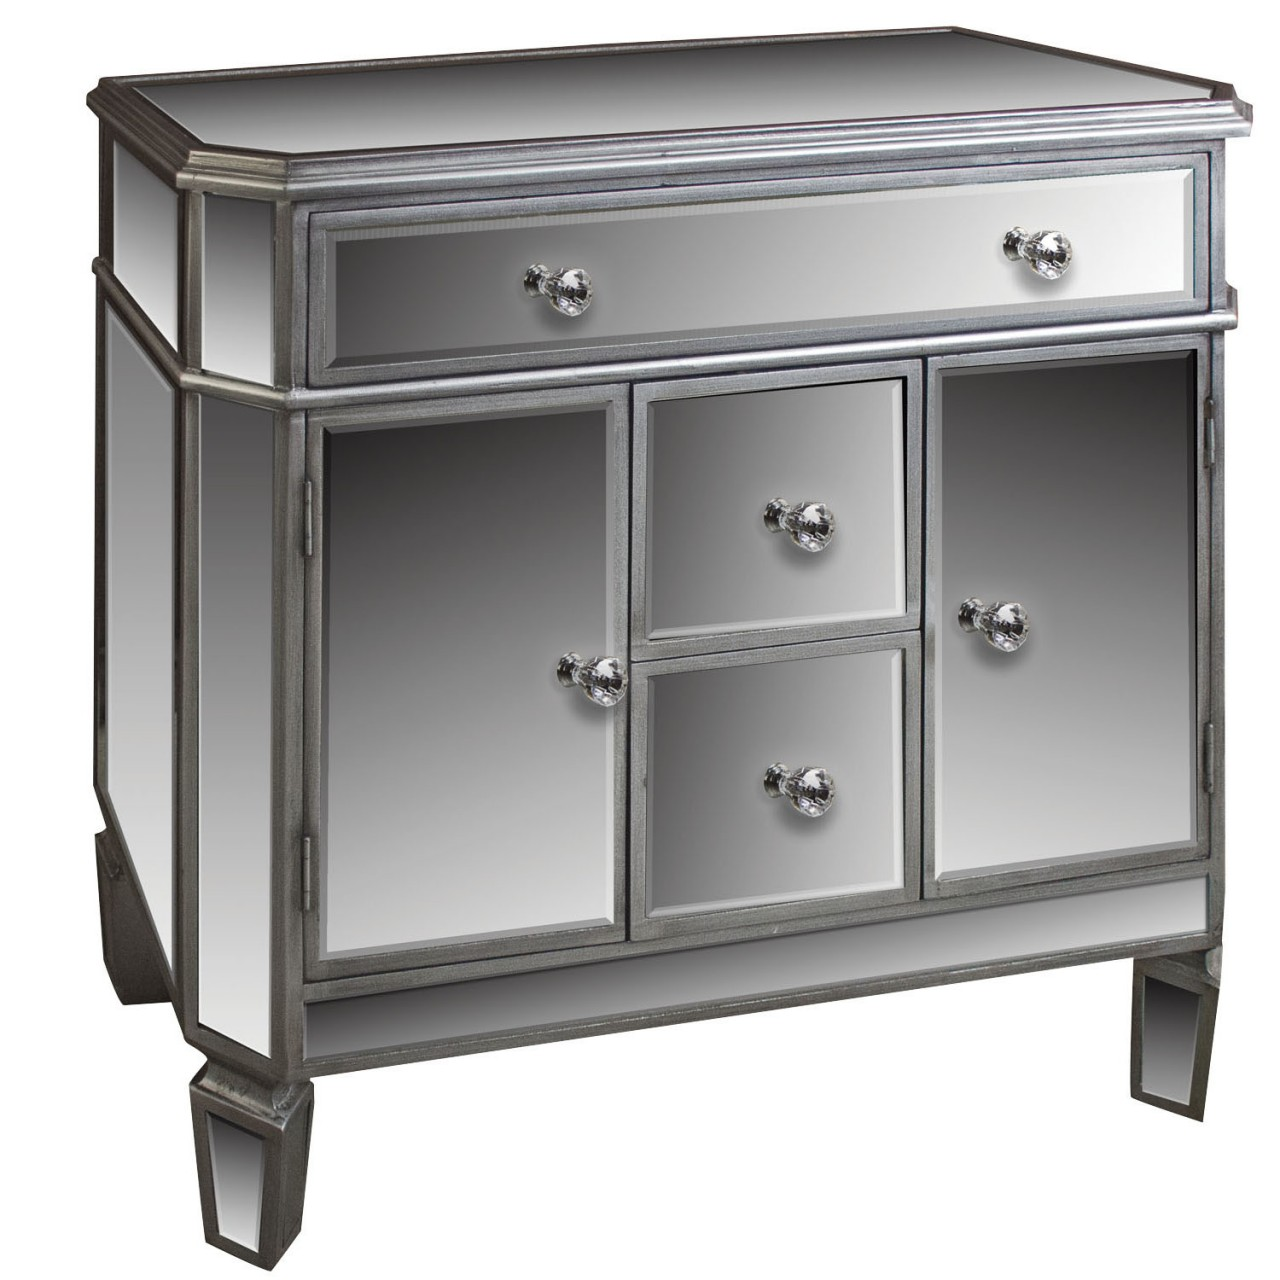 Silver Mirrored 4 Drawer 2 Cupboard Sideboard - Angelina Range